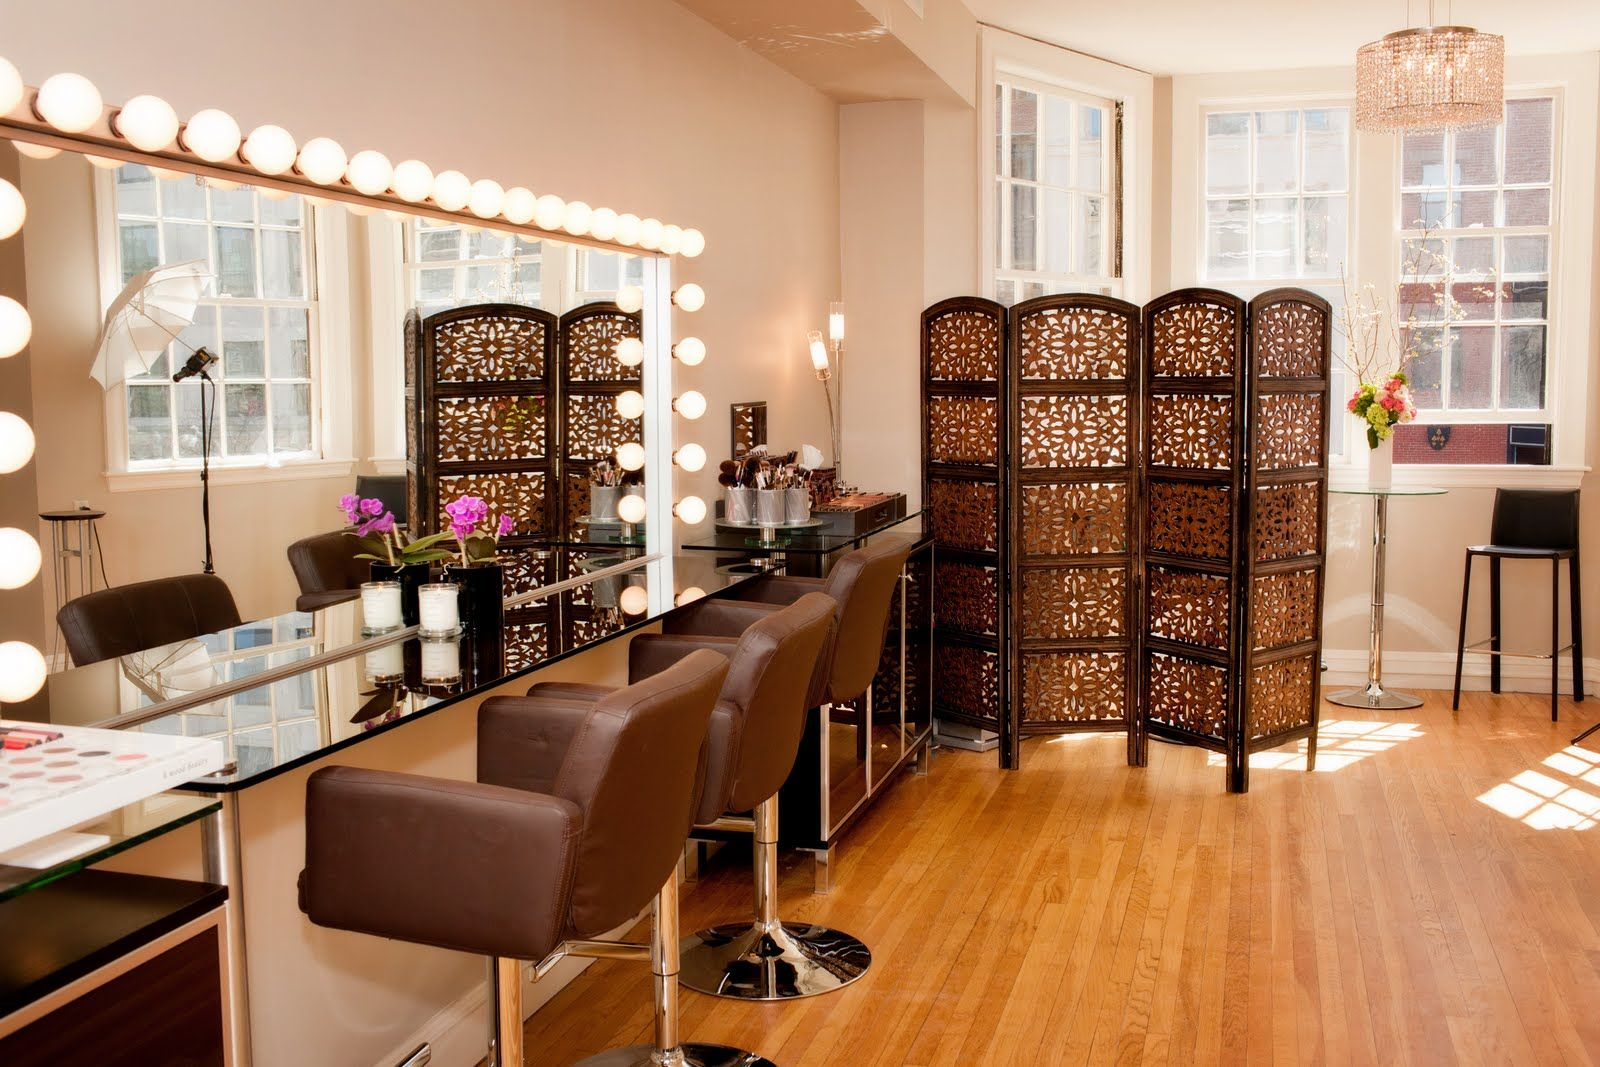 Oh my goodness I would love to have a makeup studio like